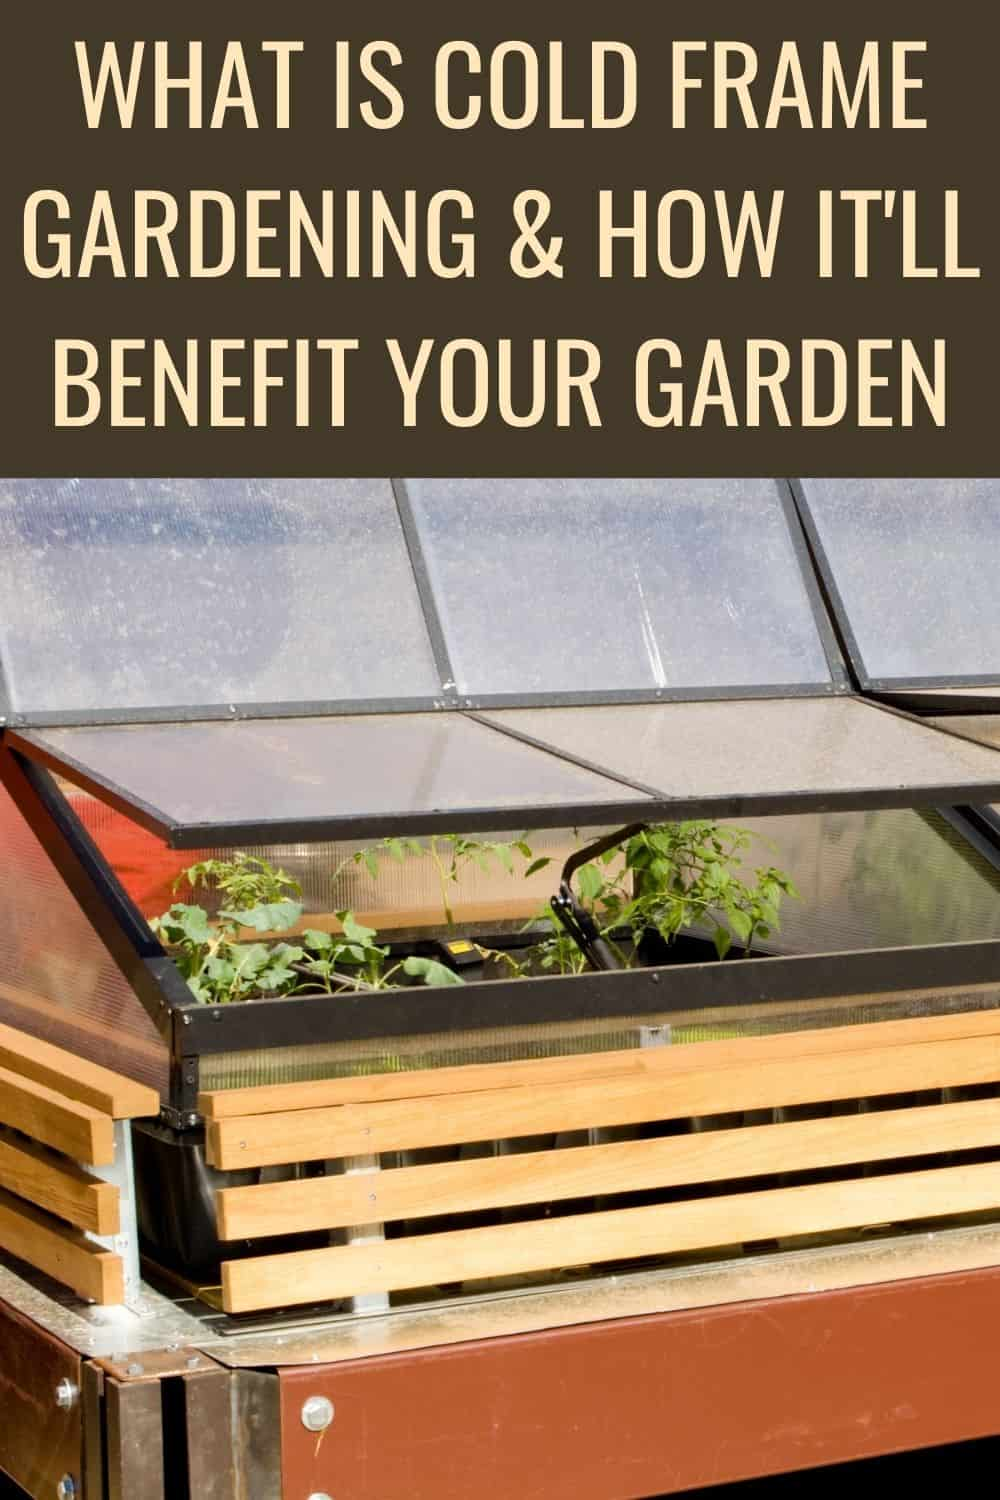 What is cold frame gardenign and how it will benefit your garden